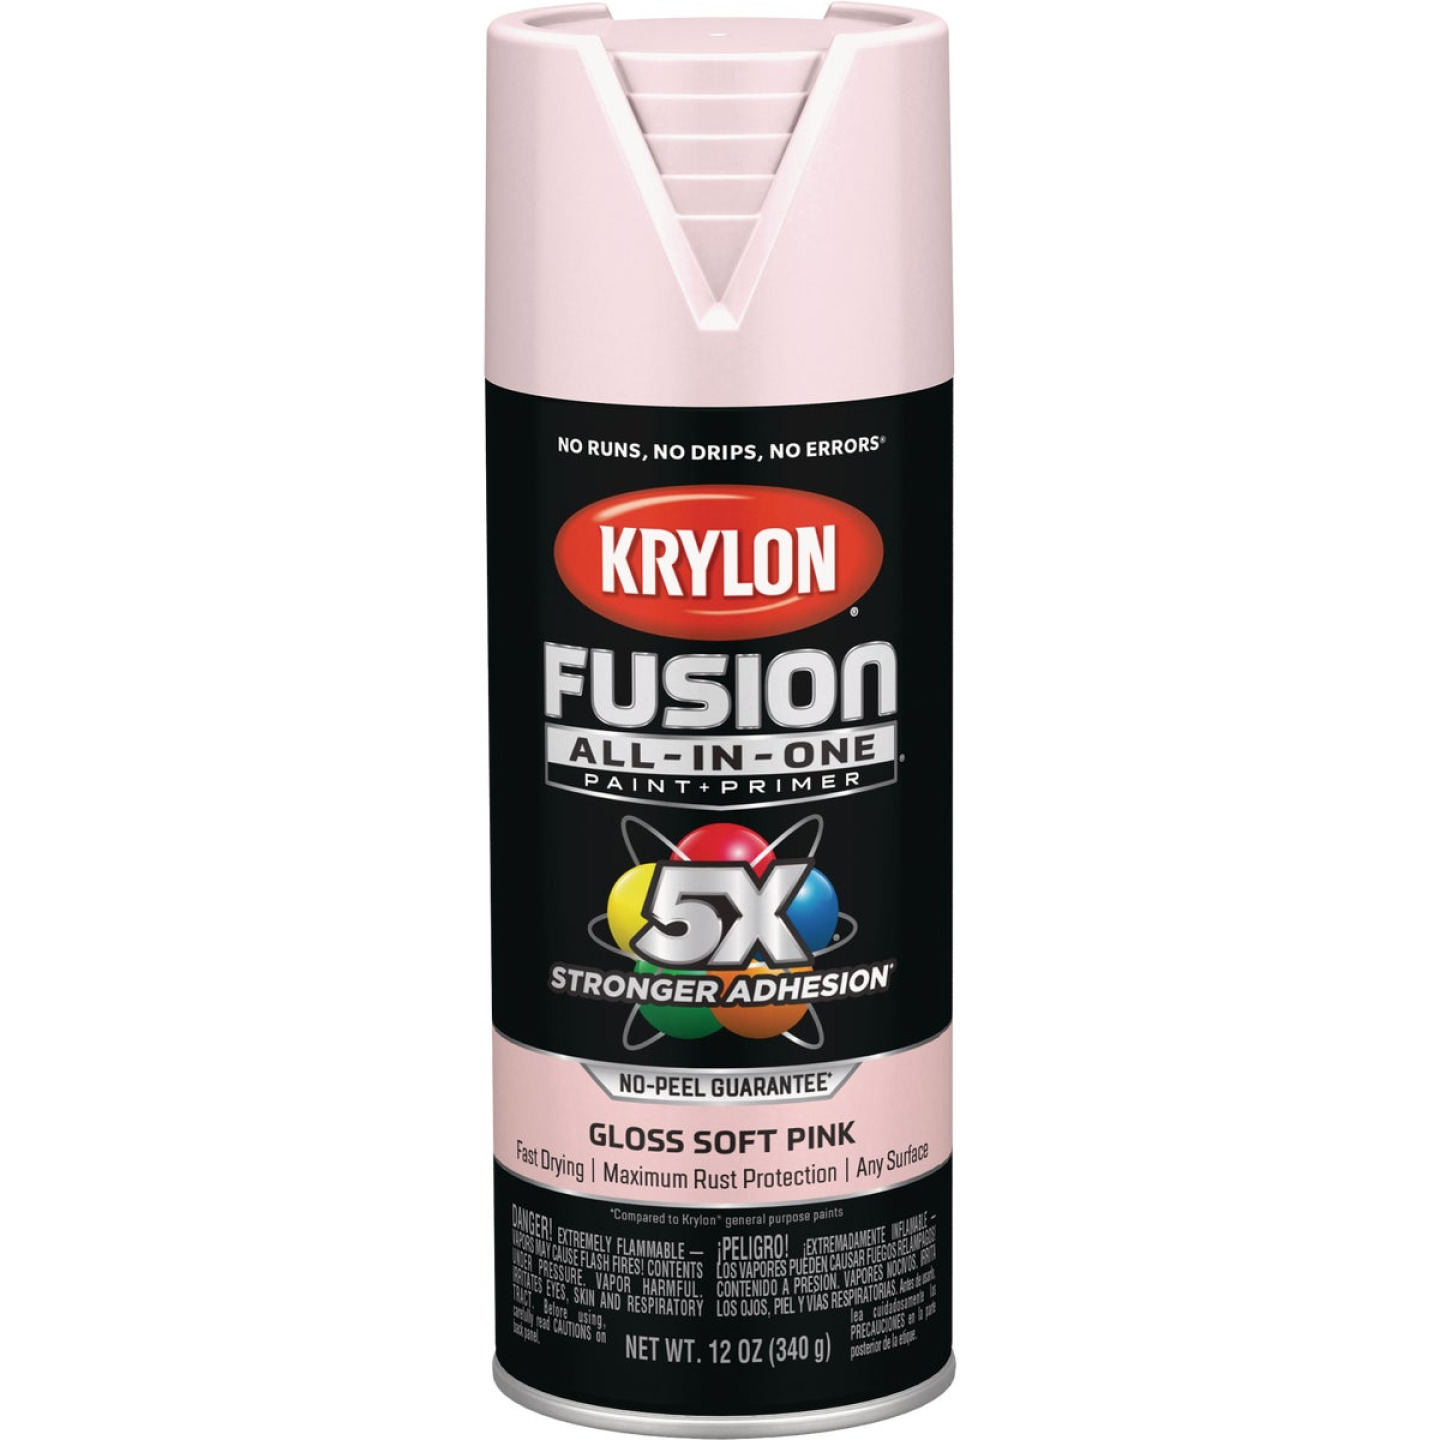 Krylon Fusion All-In-One Gloss Spray Paint & Primer, Pink Blush Image 1